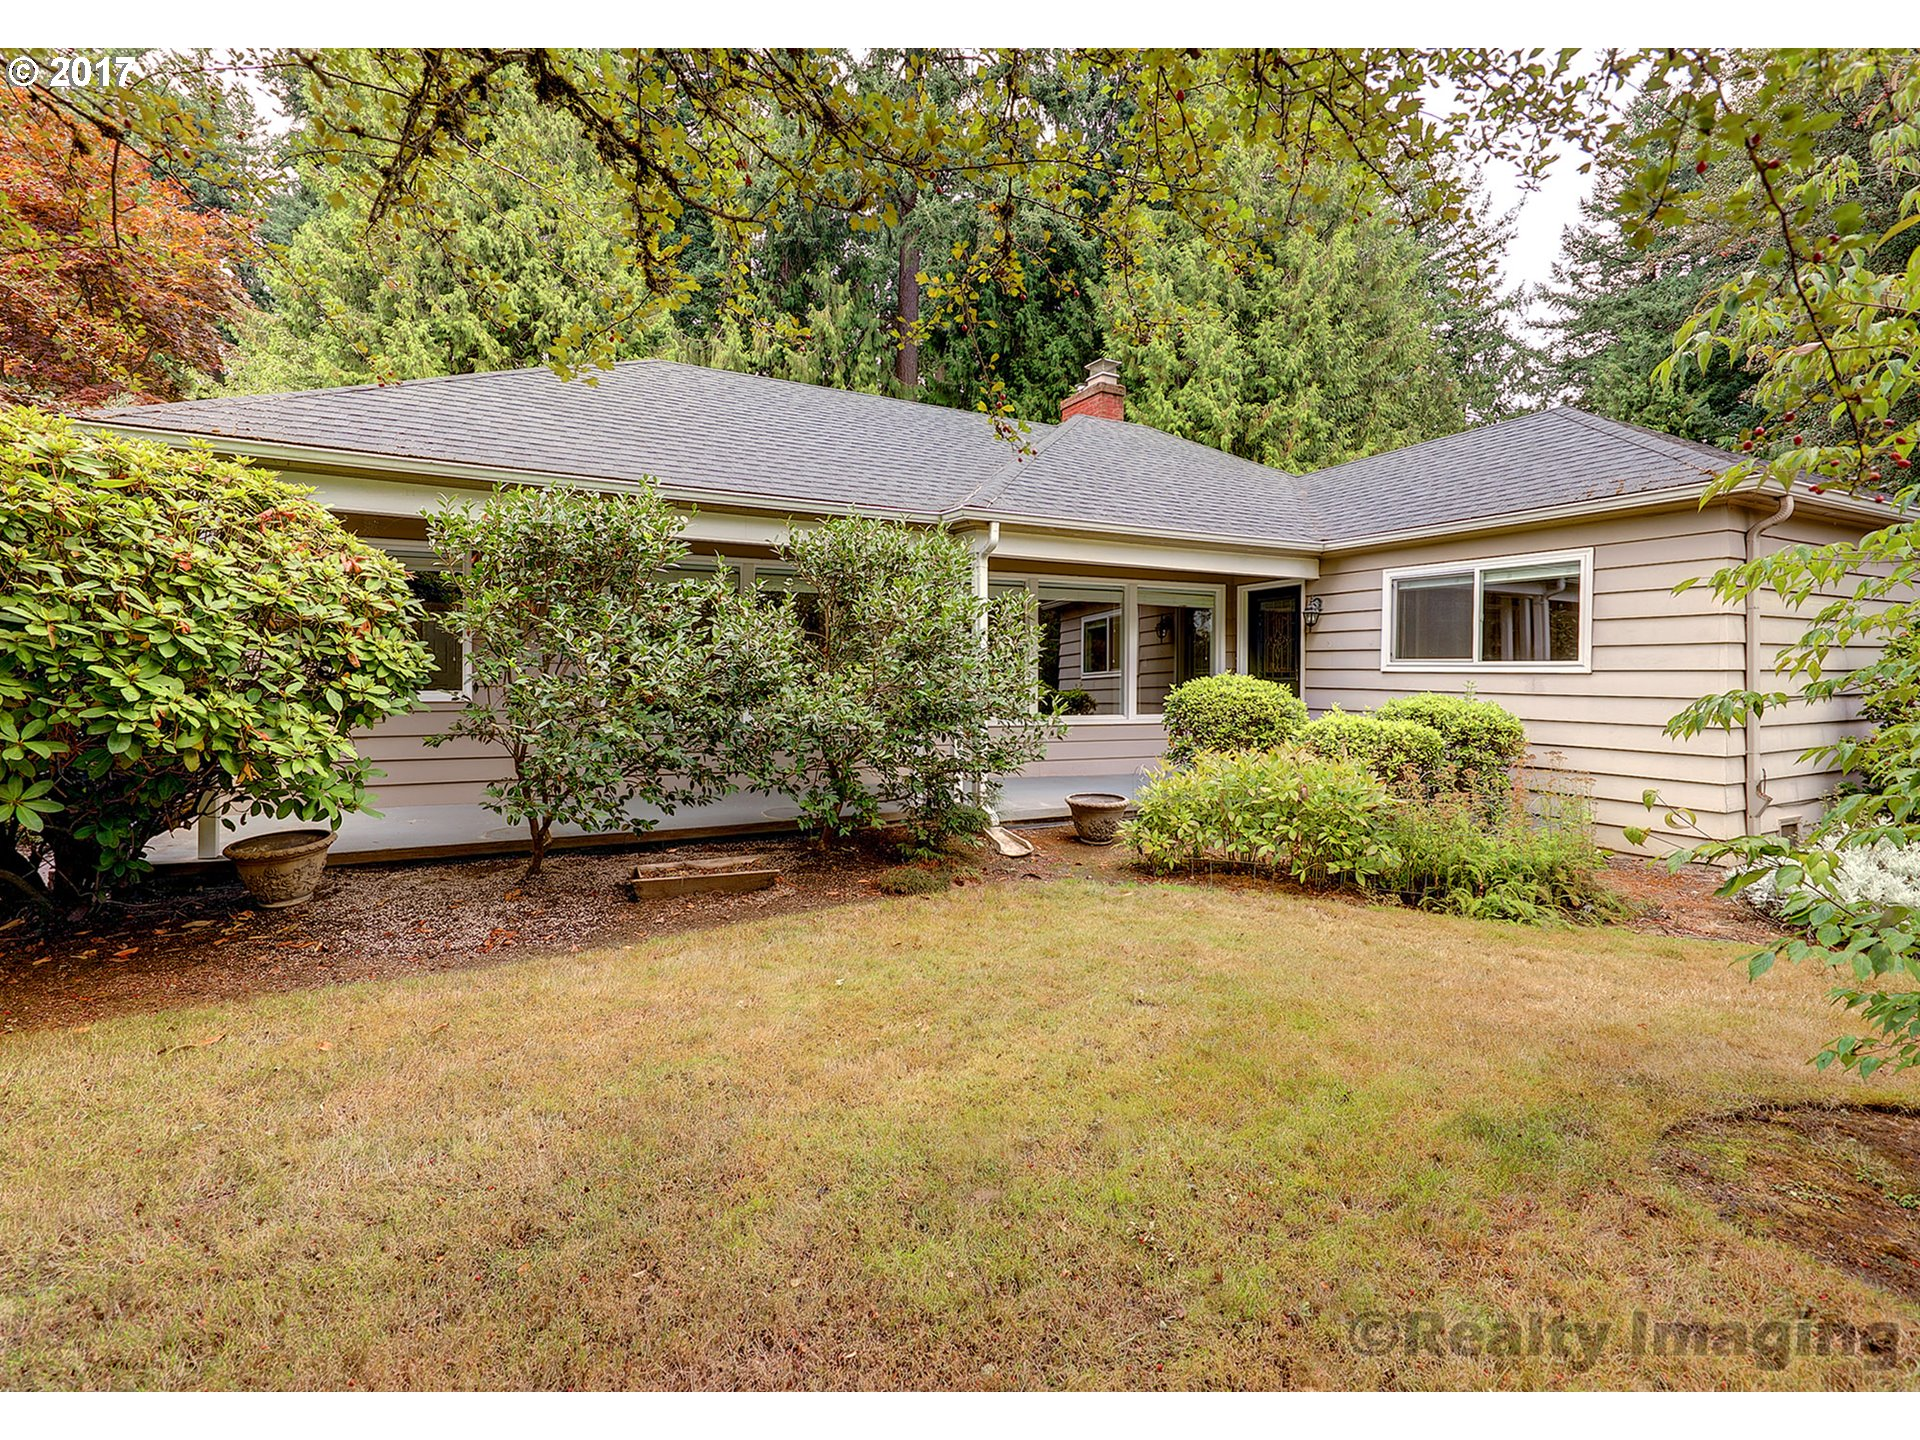 Open 11/18 1-3 & 11/19 11-2! Darling 1940's West Slope bungalow loaded w/charm! Sweet location on quiet dead end street! Hard to find open liv/din/kitchen w/french doors opening to patio - ideal for entertaining! Extensive hardwood floors; rock faced frplc; built-ins; updated sunny kitchen w/granite, ss applcs & eating bar! Spacious bdrms; handsome baths; convenient mud rm/laundry; mature landscaping & private yard! Outstanding schools!